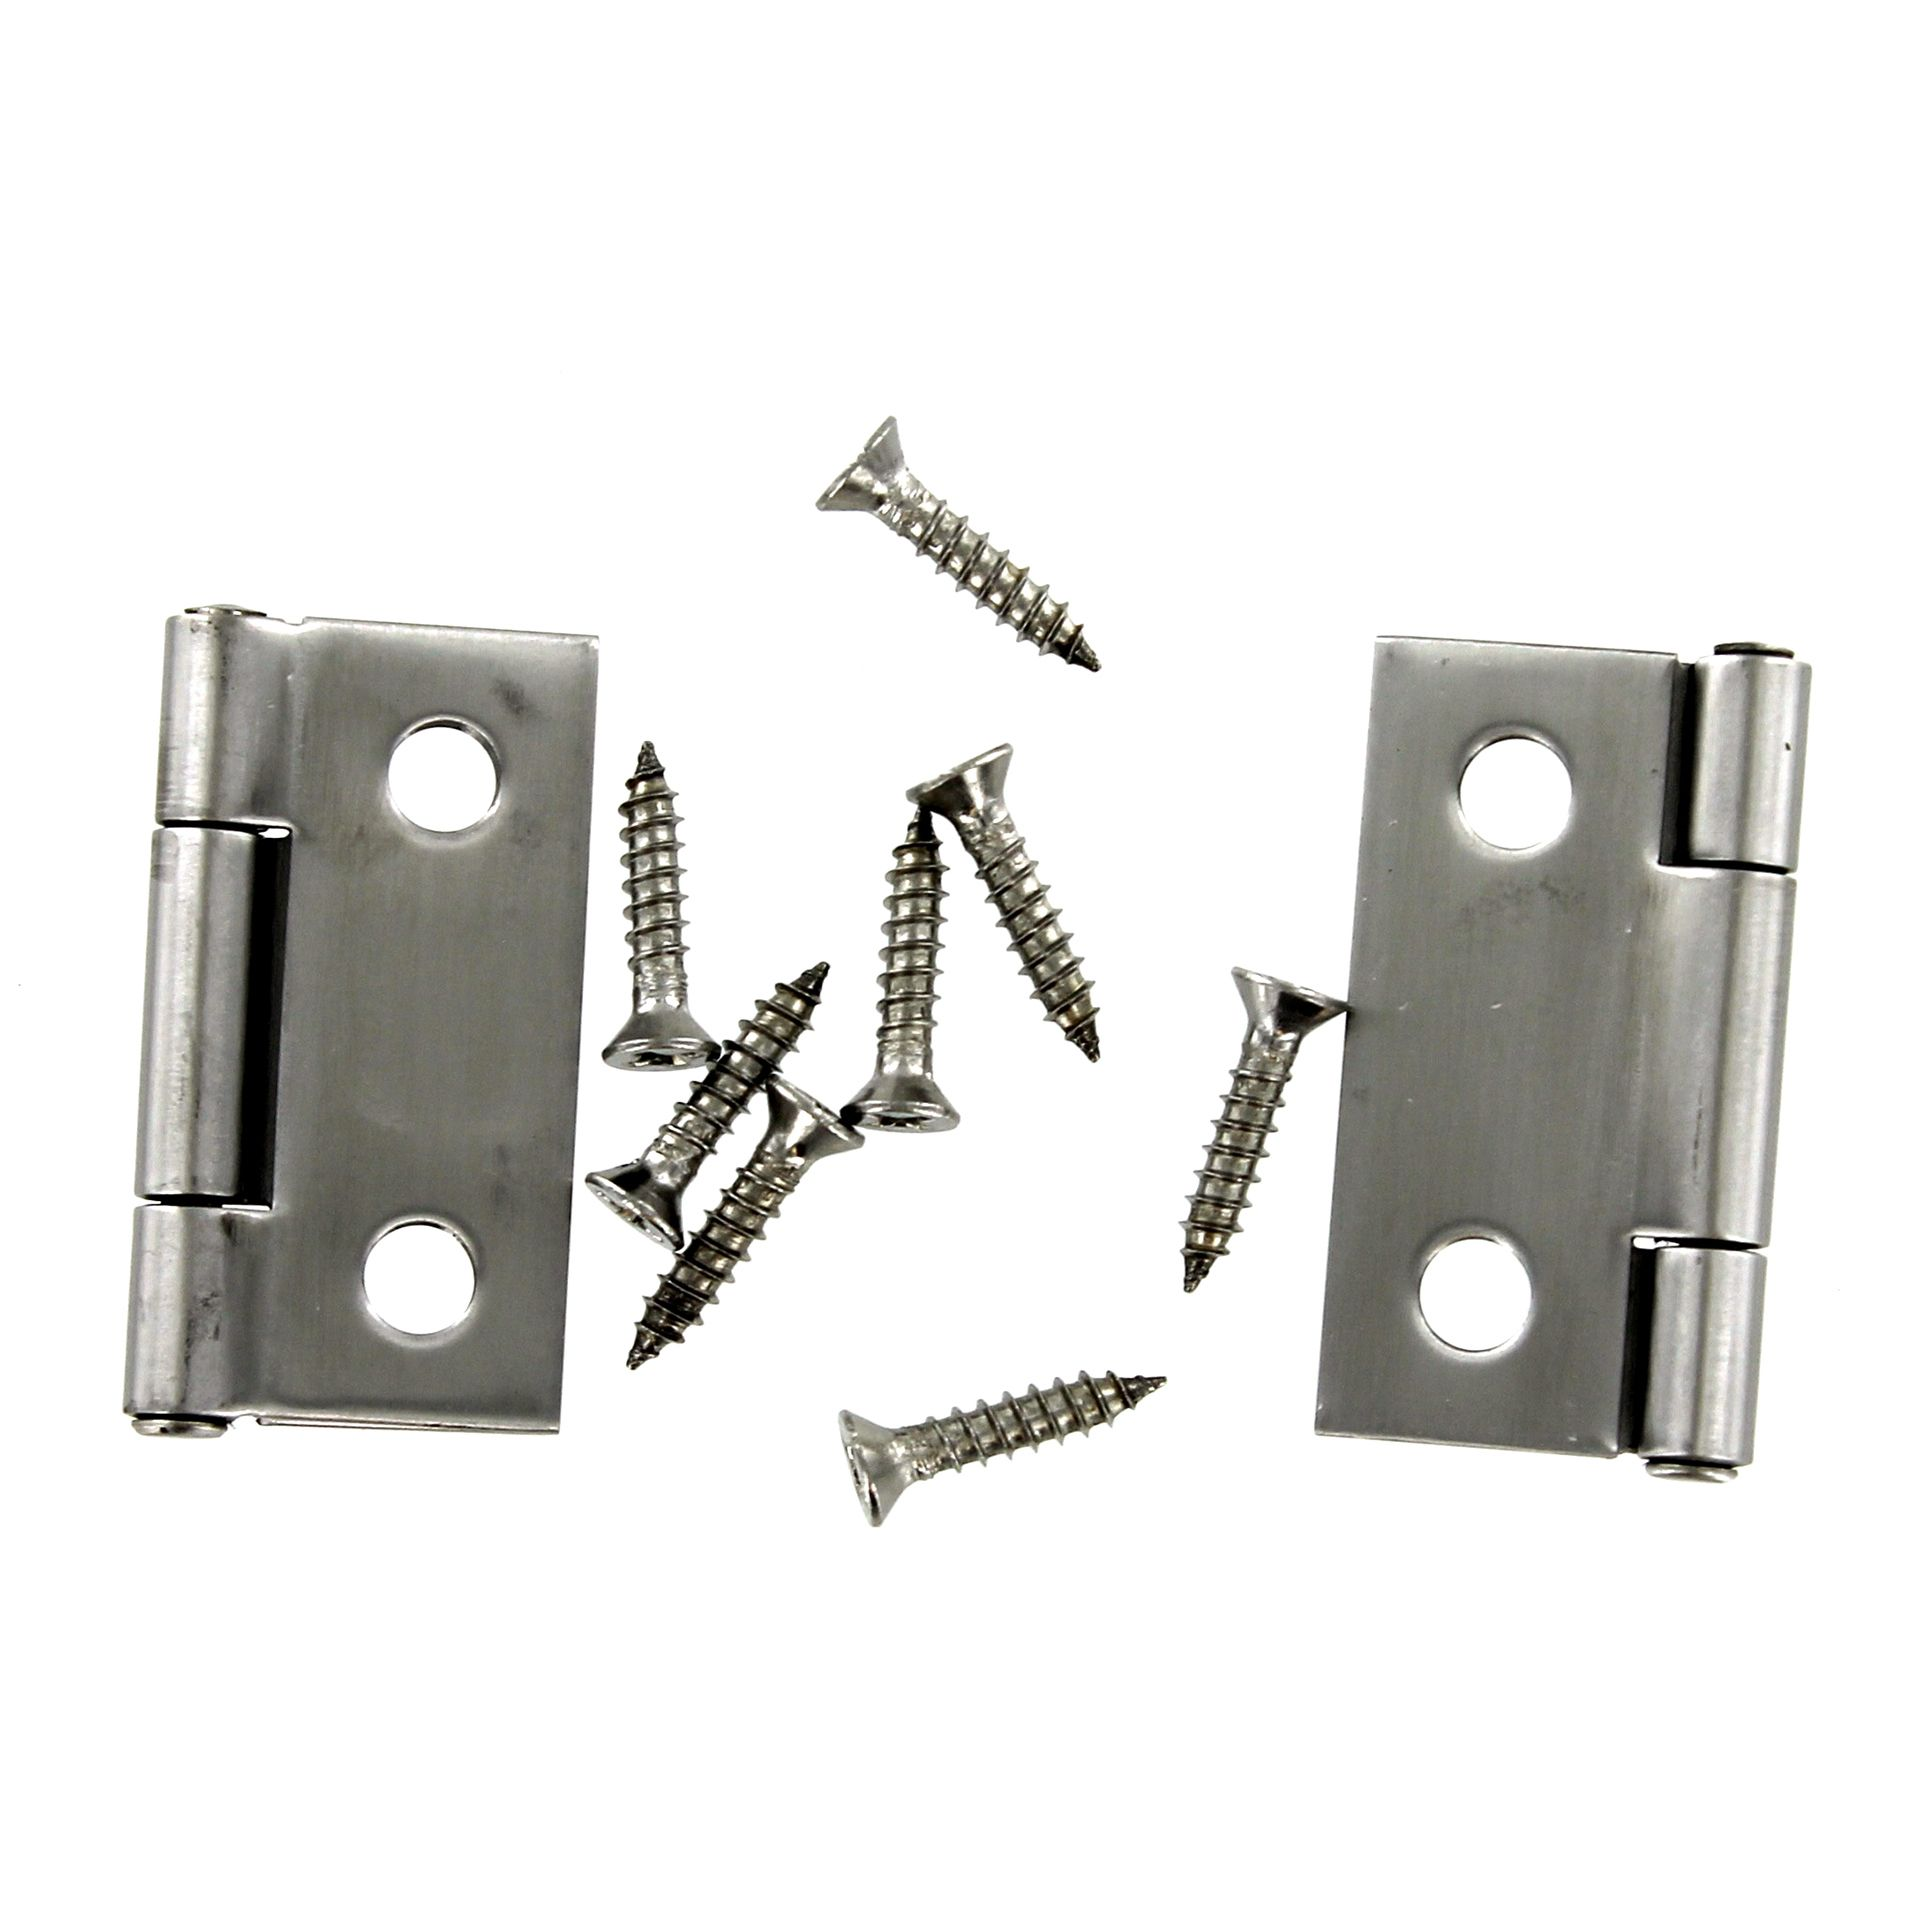 Stanley S851 139 1 1 2 Stainless Steel Silver Pin Hinge 2 ct